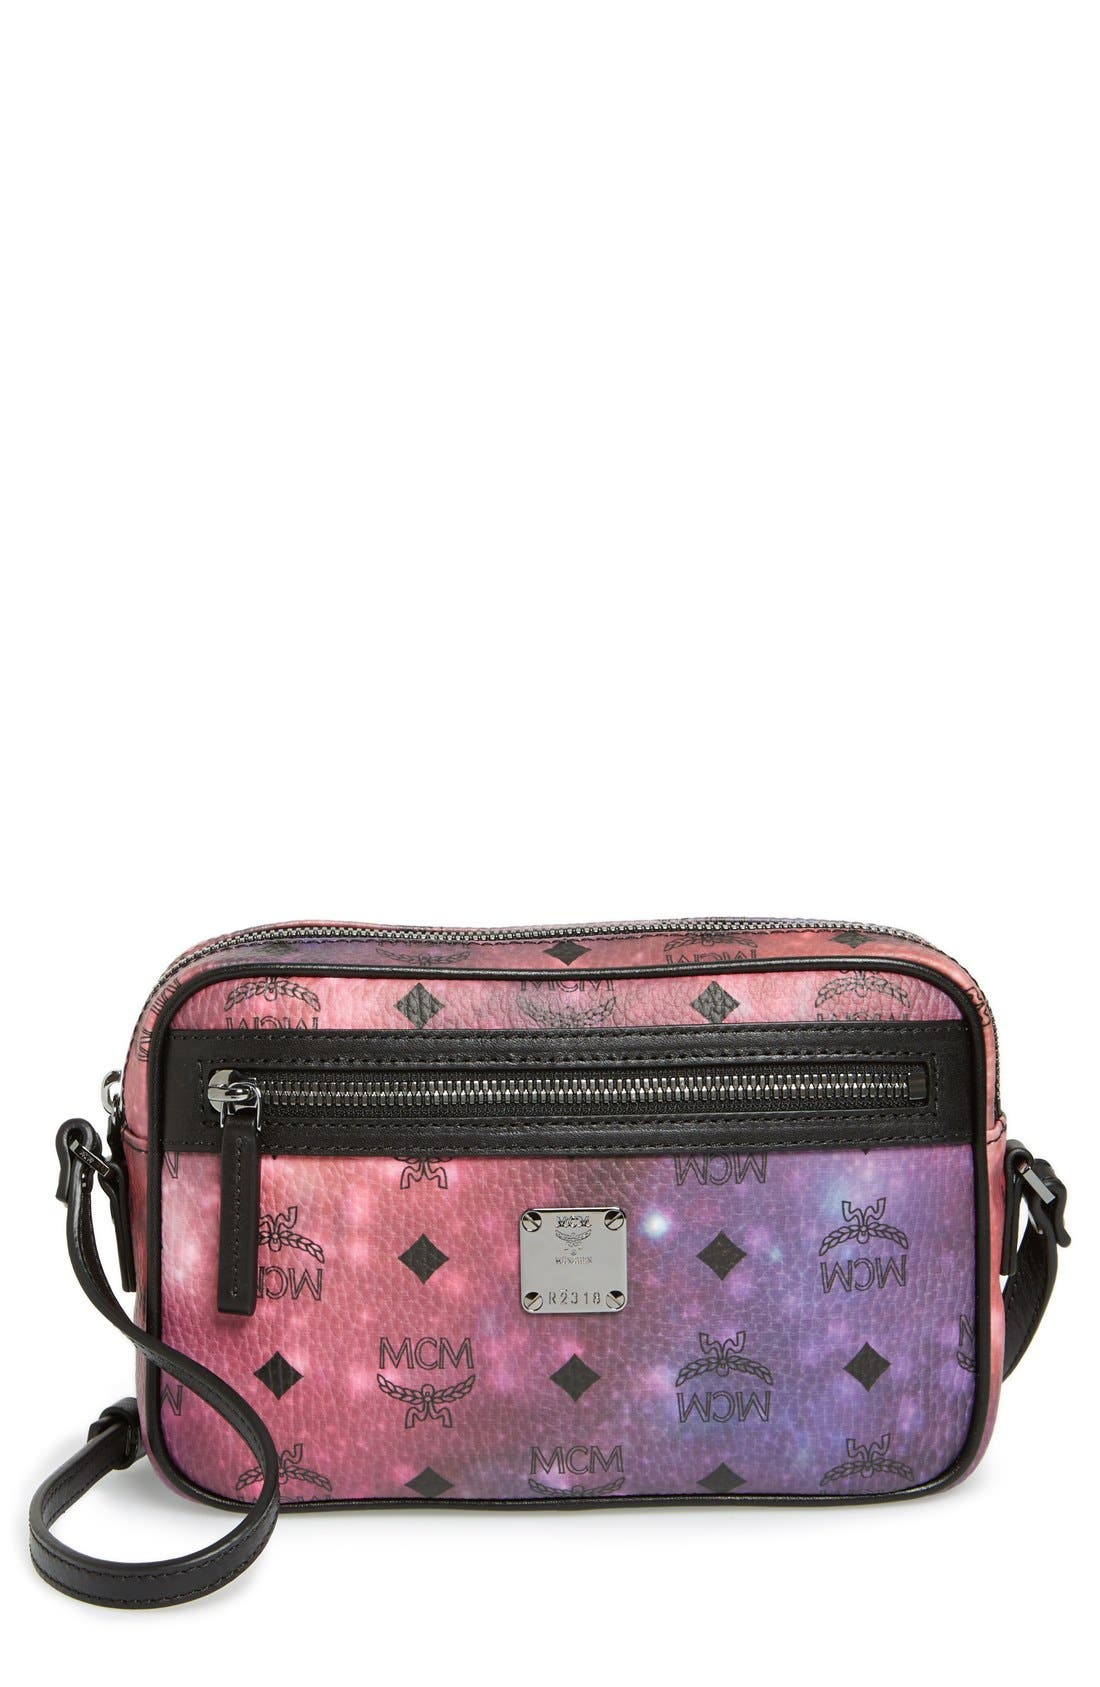 Main Image - MCM 'Galaxy Series' Crossbody Bag